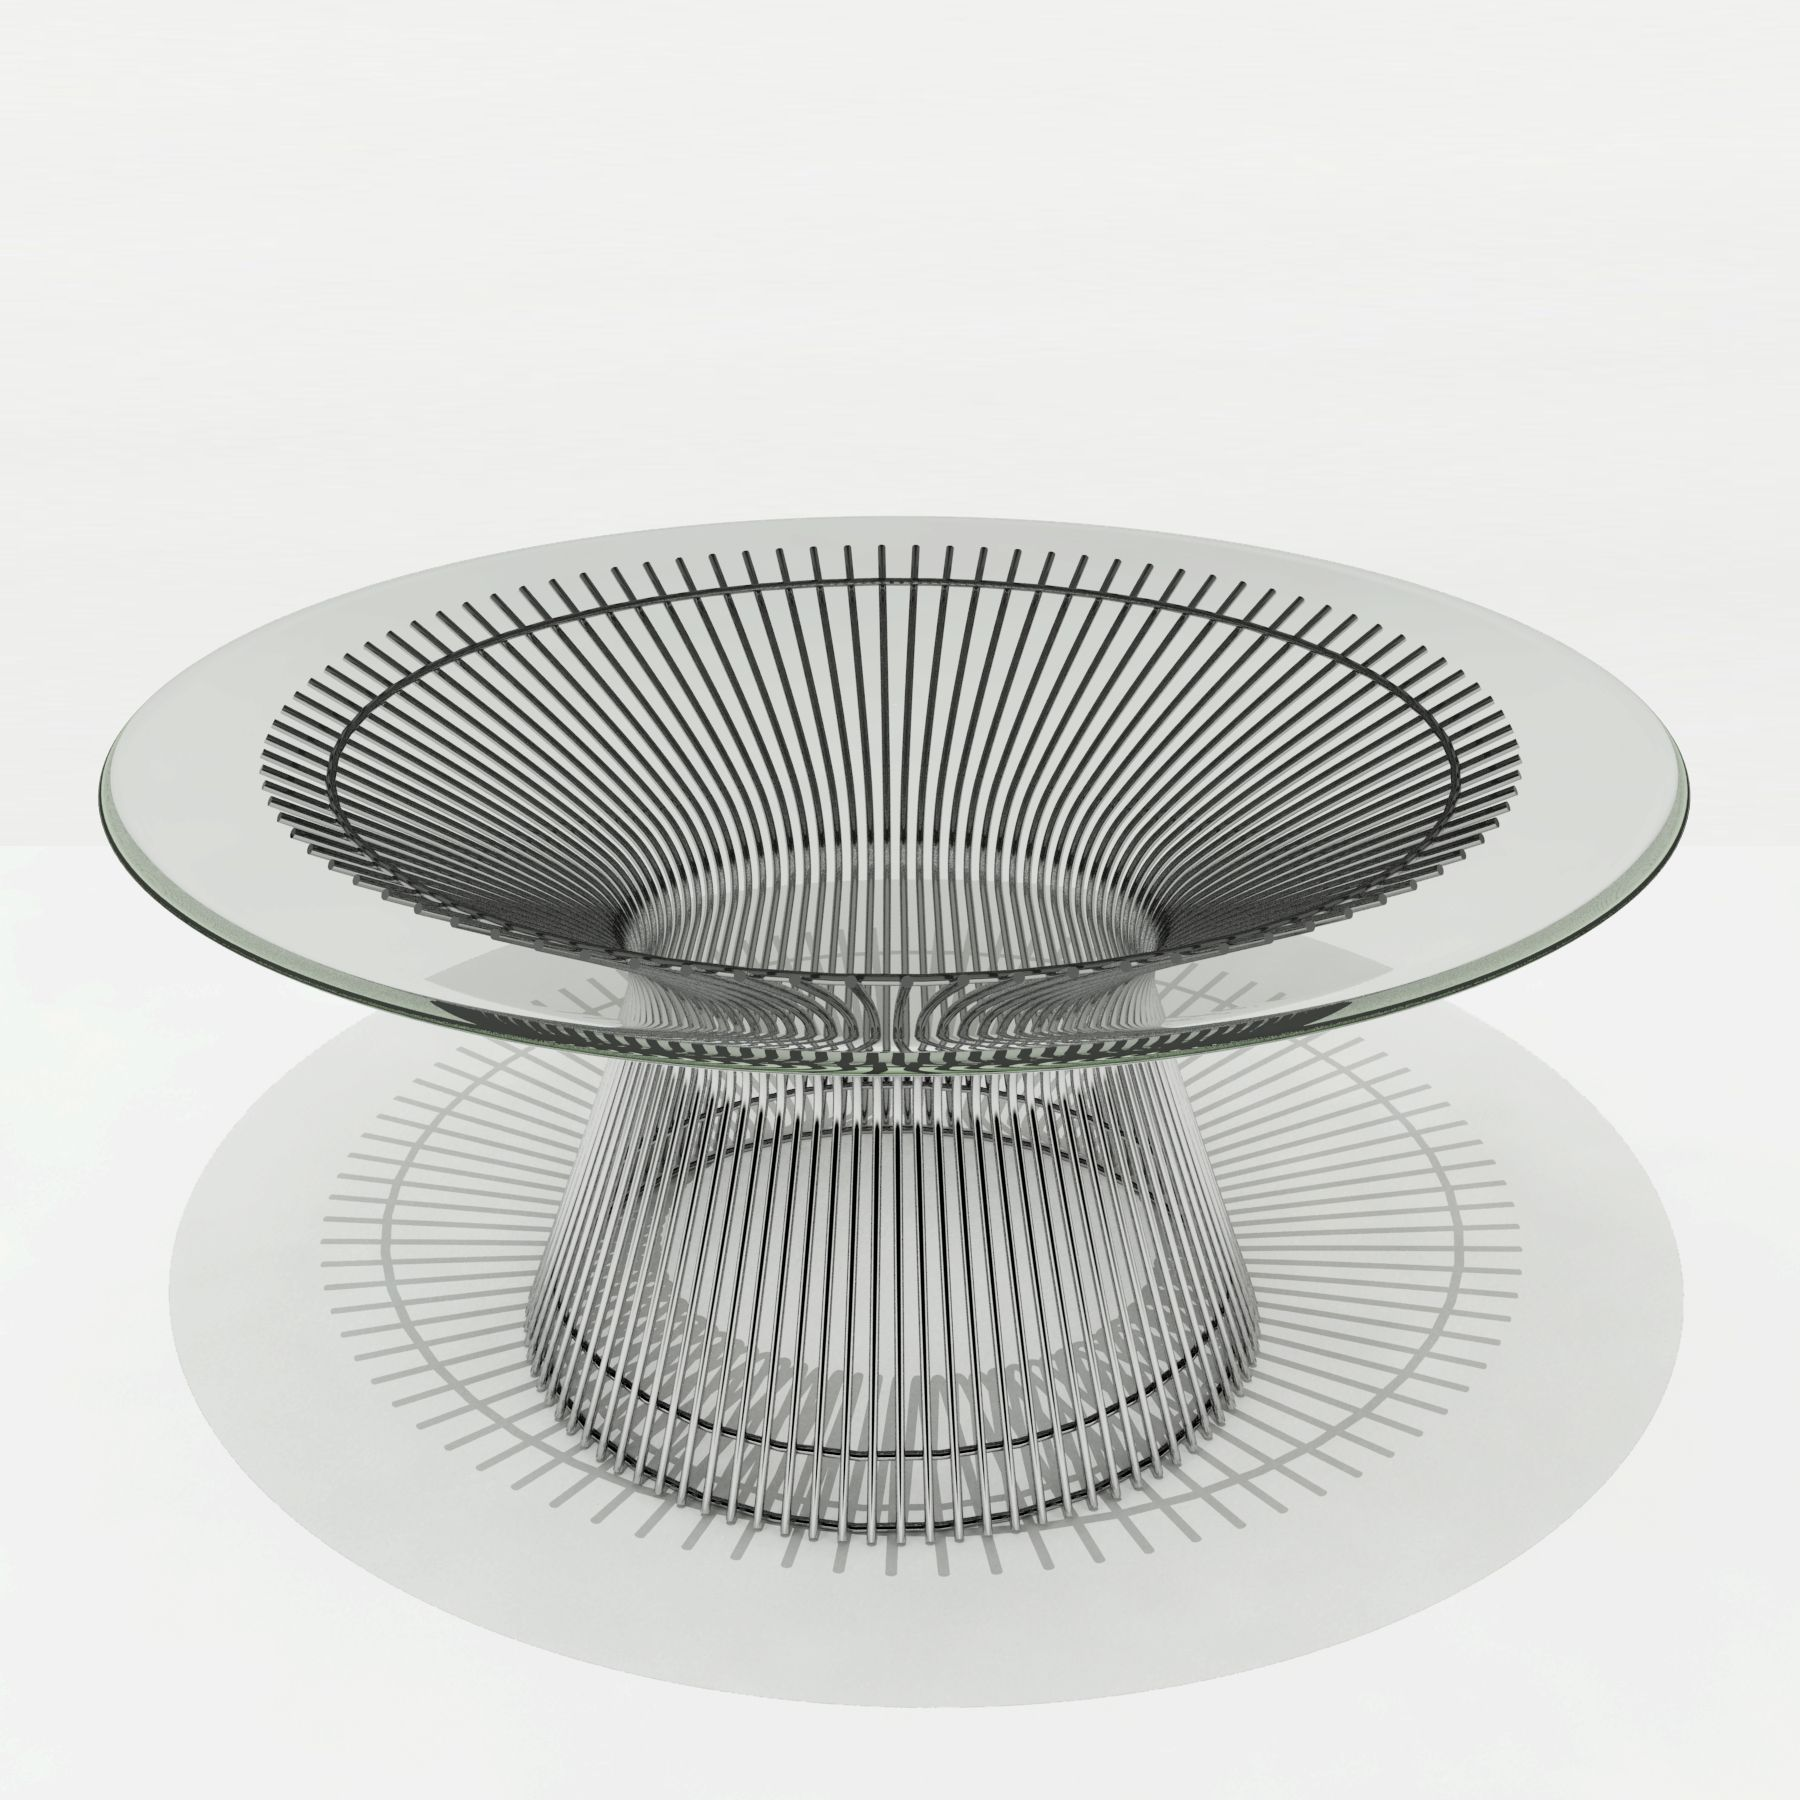 3D drawing of coffee table for website